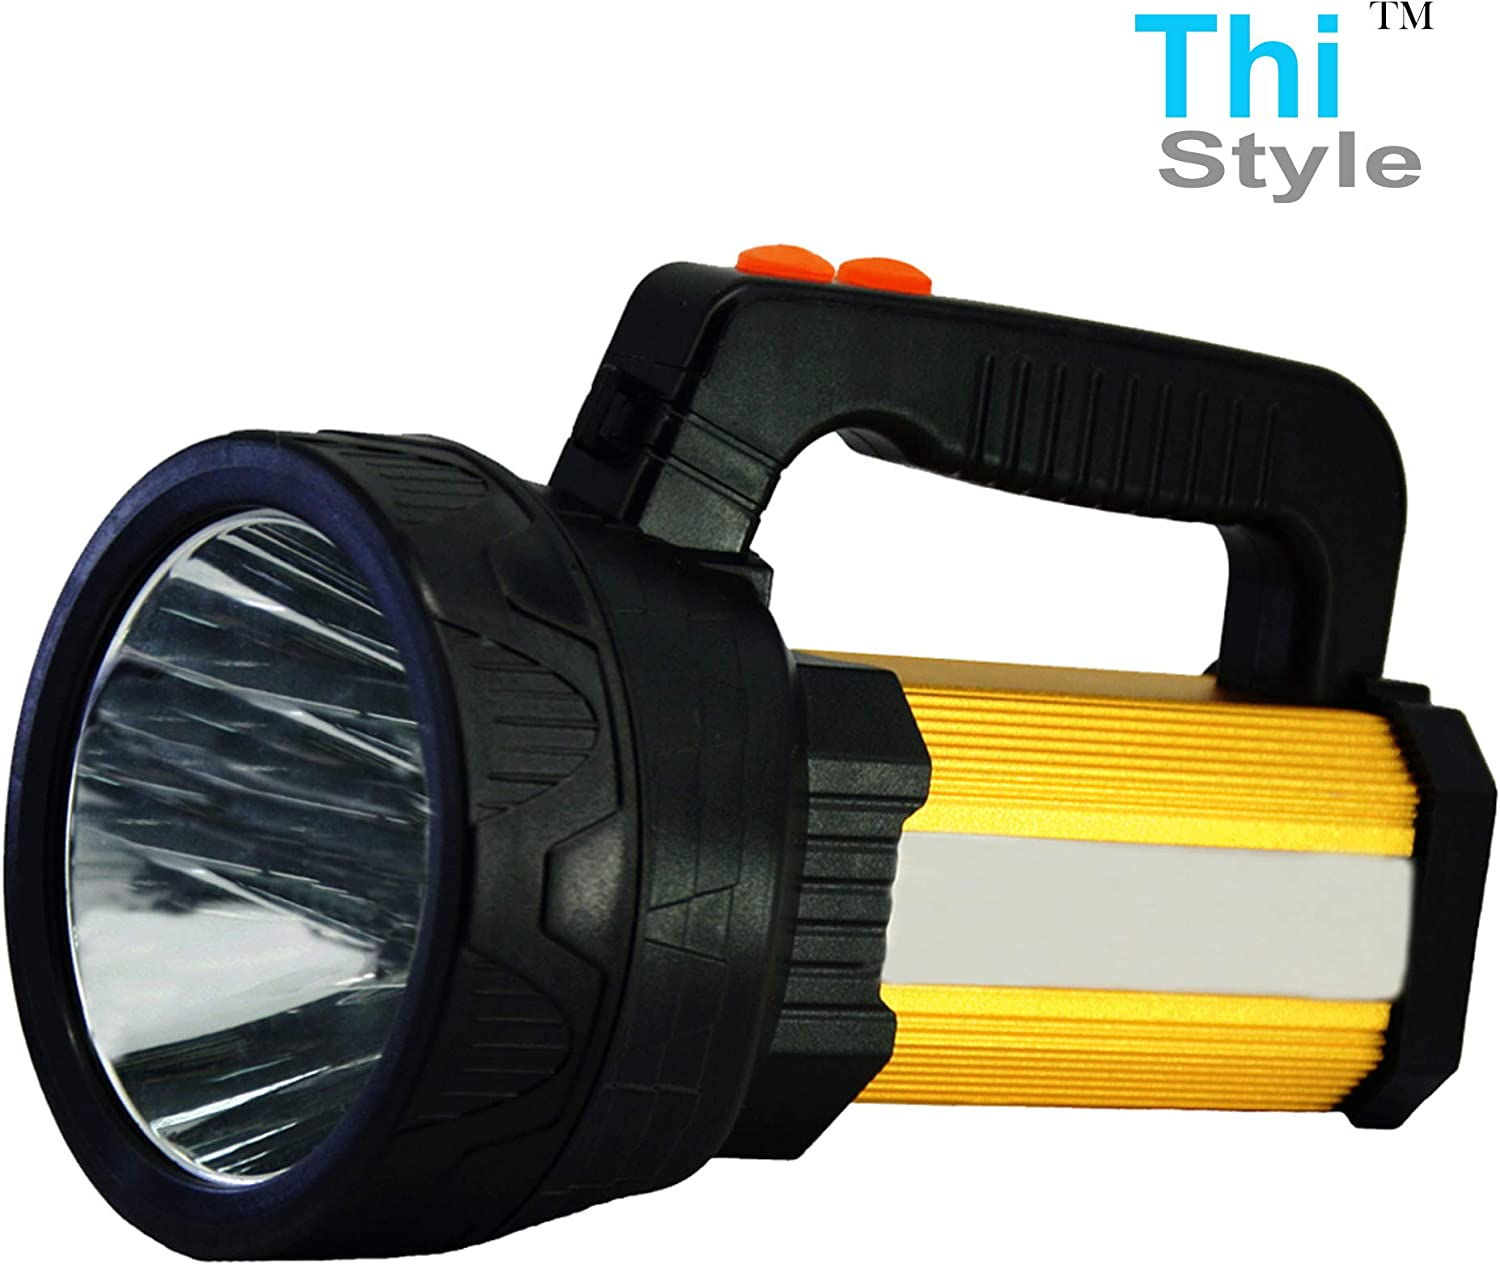 Searchlight Handheld Lamp Torch Spotlight LED Portable Rechargeable Flashlight